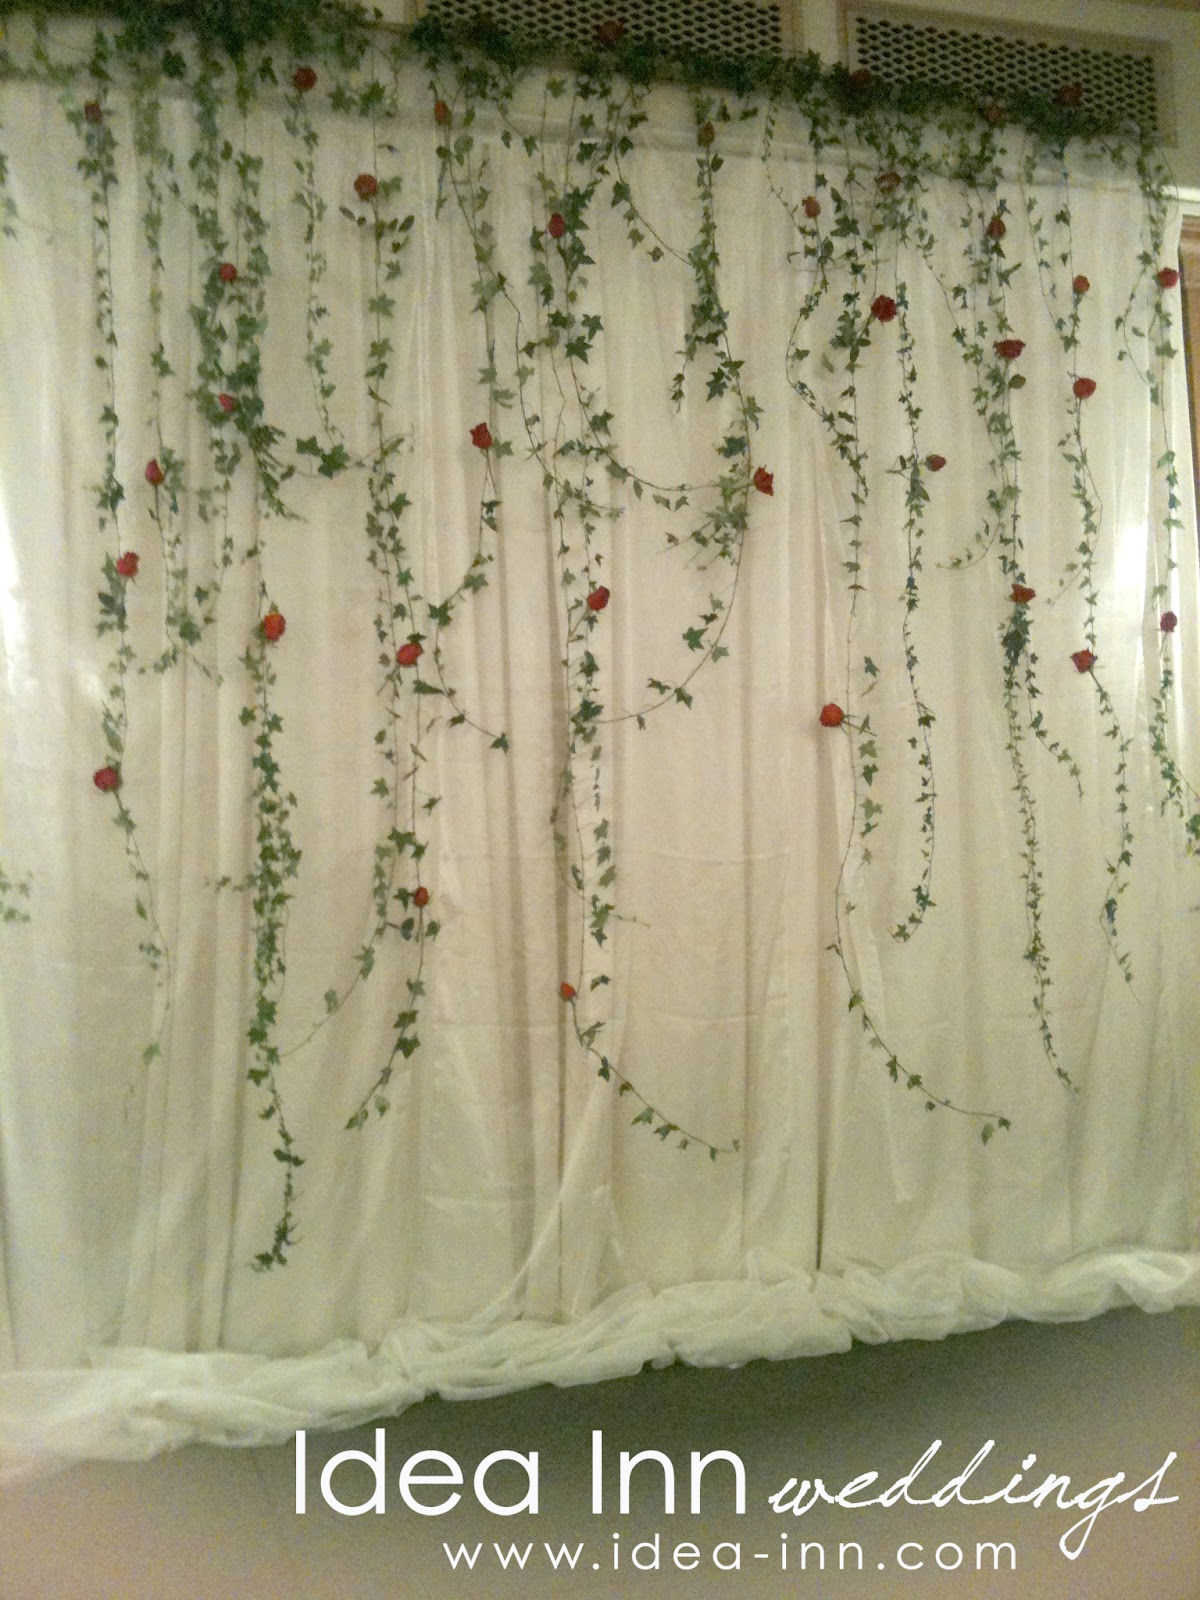 RafflesSingaporeWedding-ballroom backdrop